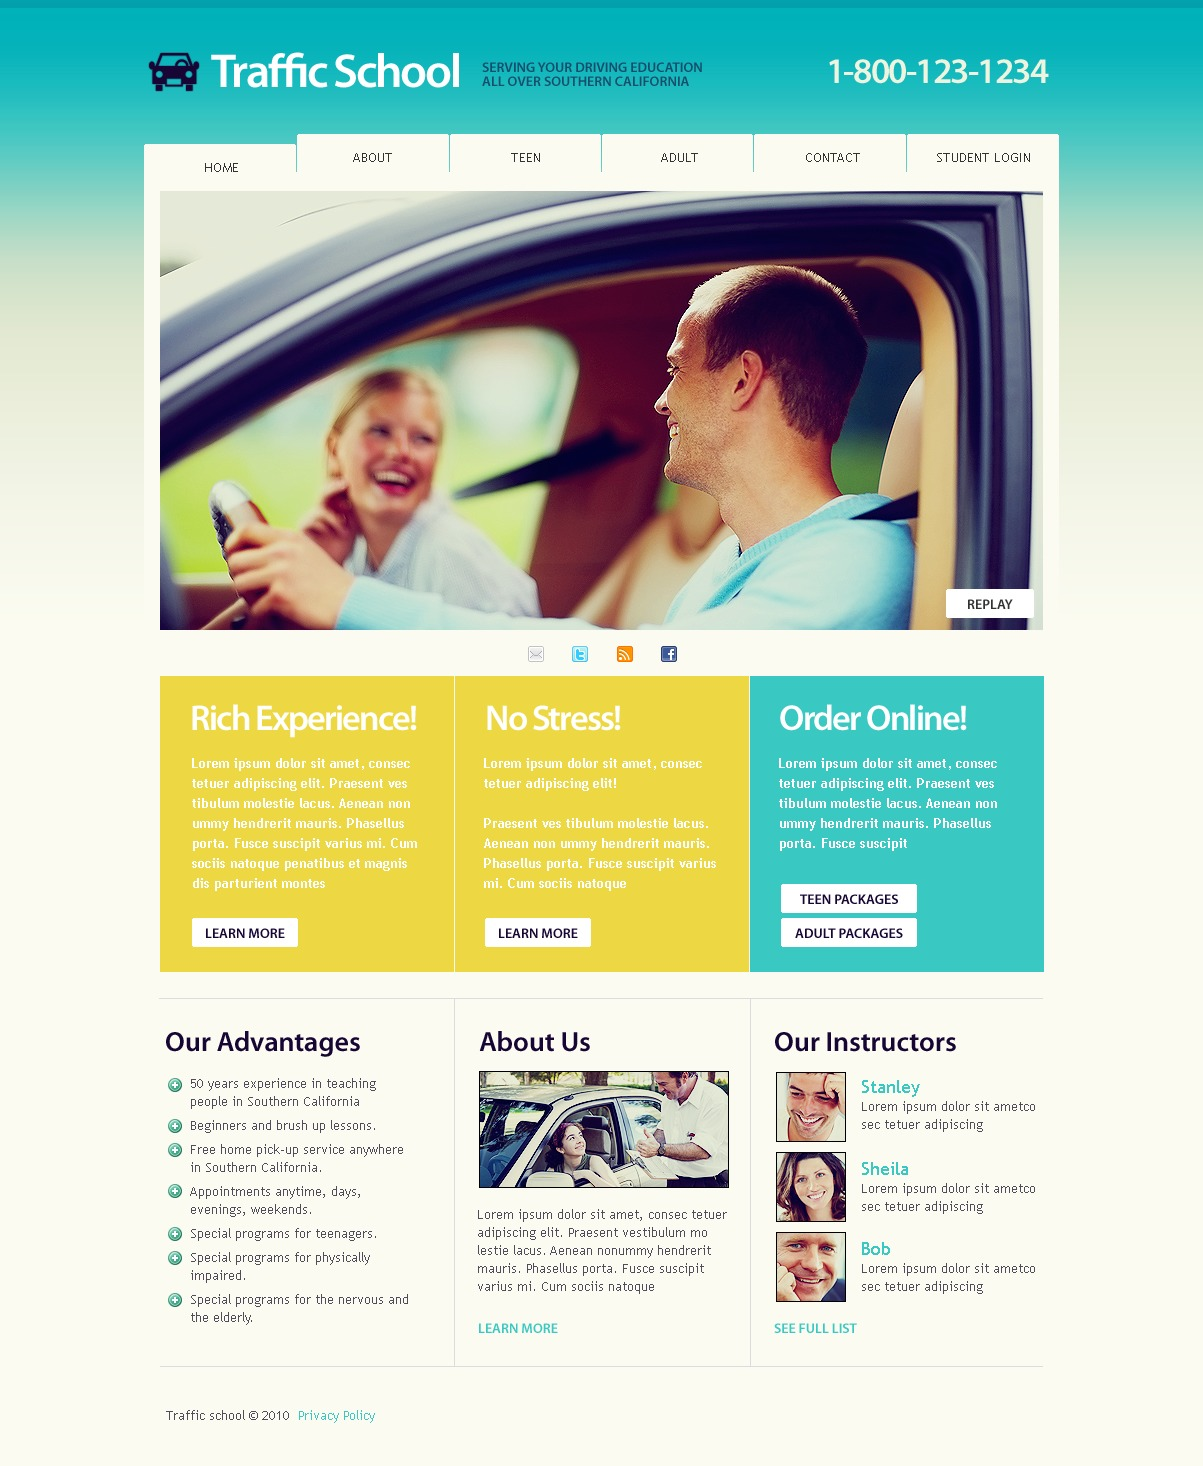 The Traffic School PSD Design 54521, one of the best PSD templates of its kind (cars, education, flash 8, wide), also known as traffic school PSD template, car PSD template, driving PSD template, drive PSD template, training PSD template, program PSD template, courses PSD template, facilities PSD template, theory PSD template, test PSD template, equipment PSD template, opportunities PSD template, intensive PSD template, residential PSD template, learning PSD template, easy PSD template, prices PSD template, mobile PSD template, order PSD template, payment PSD template, different PSD template, exams PSD template, pass PSD template, teachers PSD template, guide PSD template, certification PSD template, books PSD template, hit PSD template, groups PSD template, roads PSD template, professional and related with traffic school, car, driving, drive, training, program, courses, facilities, theory, test, equipment, opportunities, intensive, residential, learning, easy, prices, mobile, order, payment, different, exams, pass, teachers, guide, certification, books, hit, groups, roads, professional, etc.